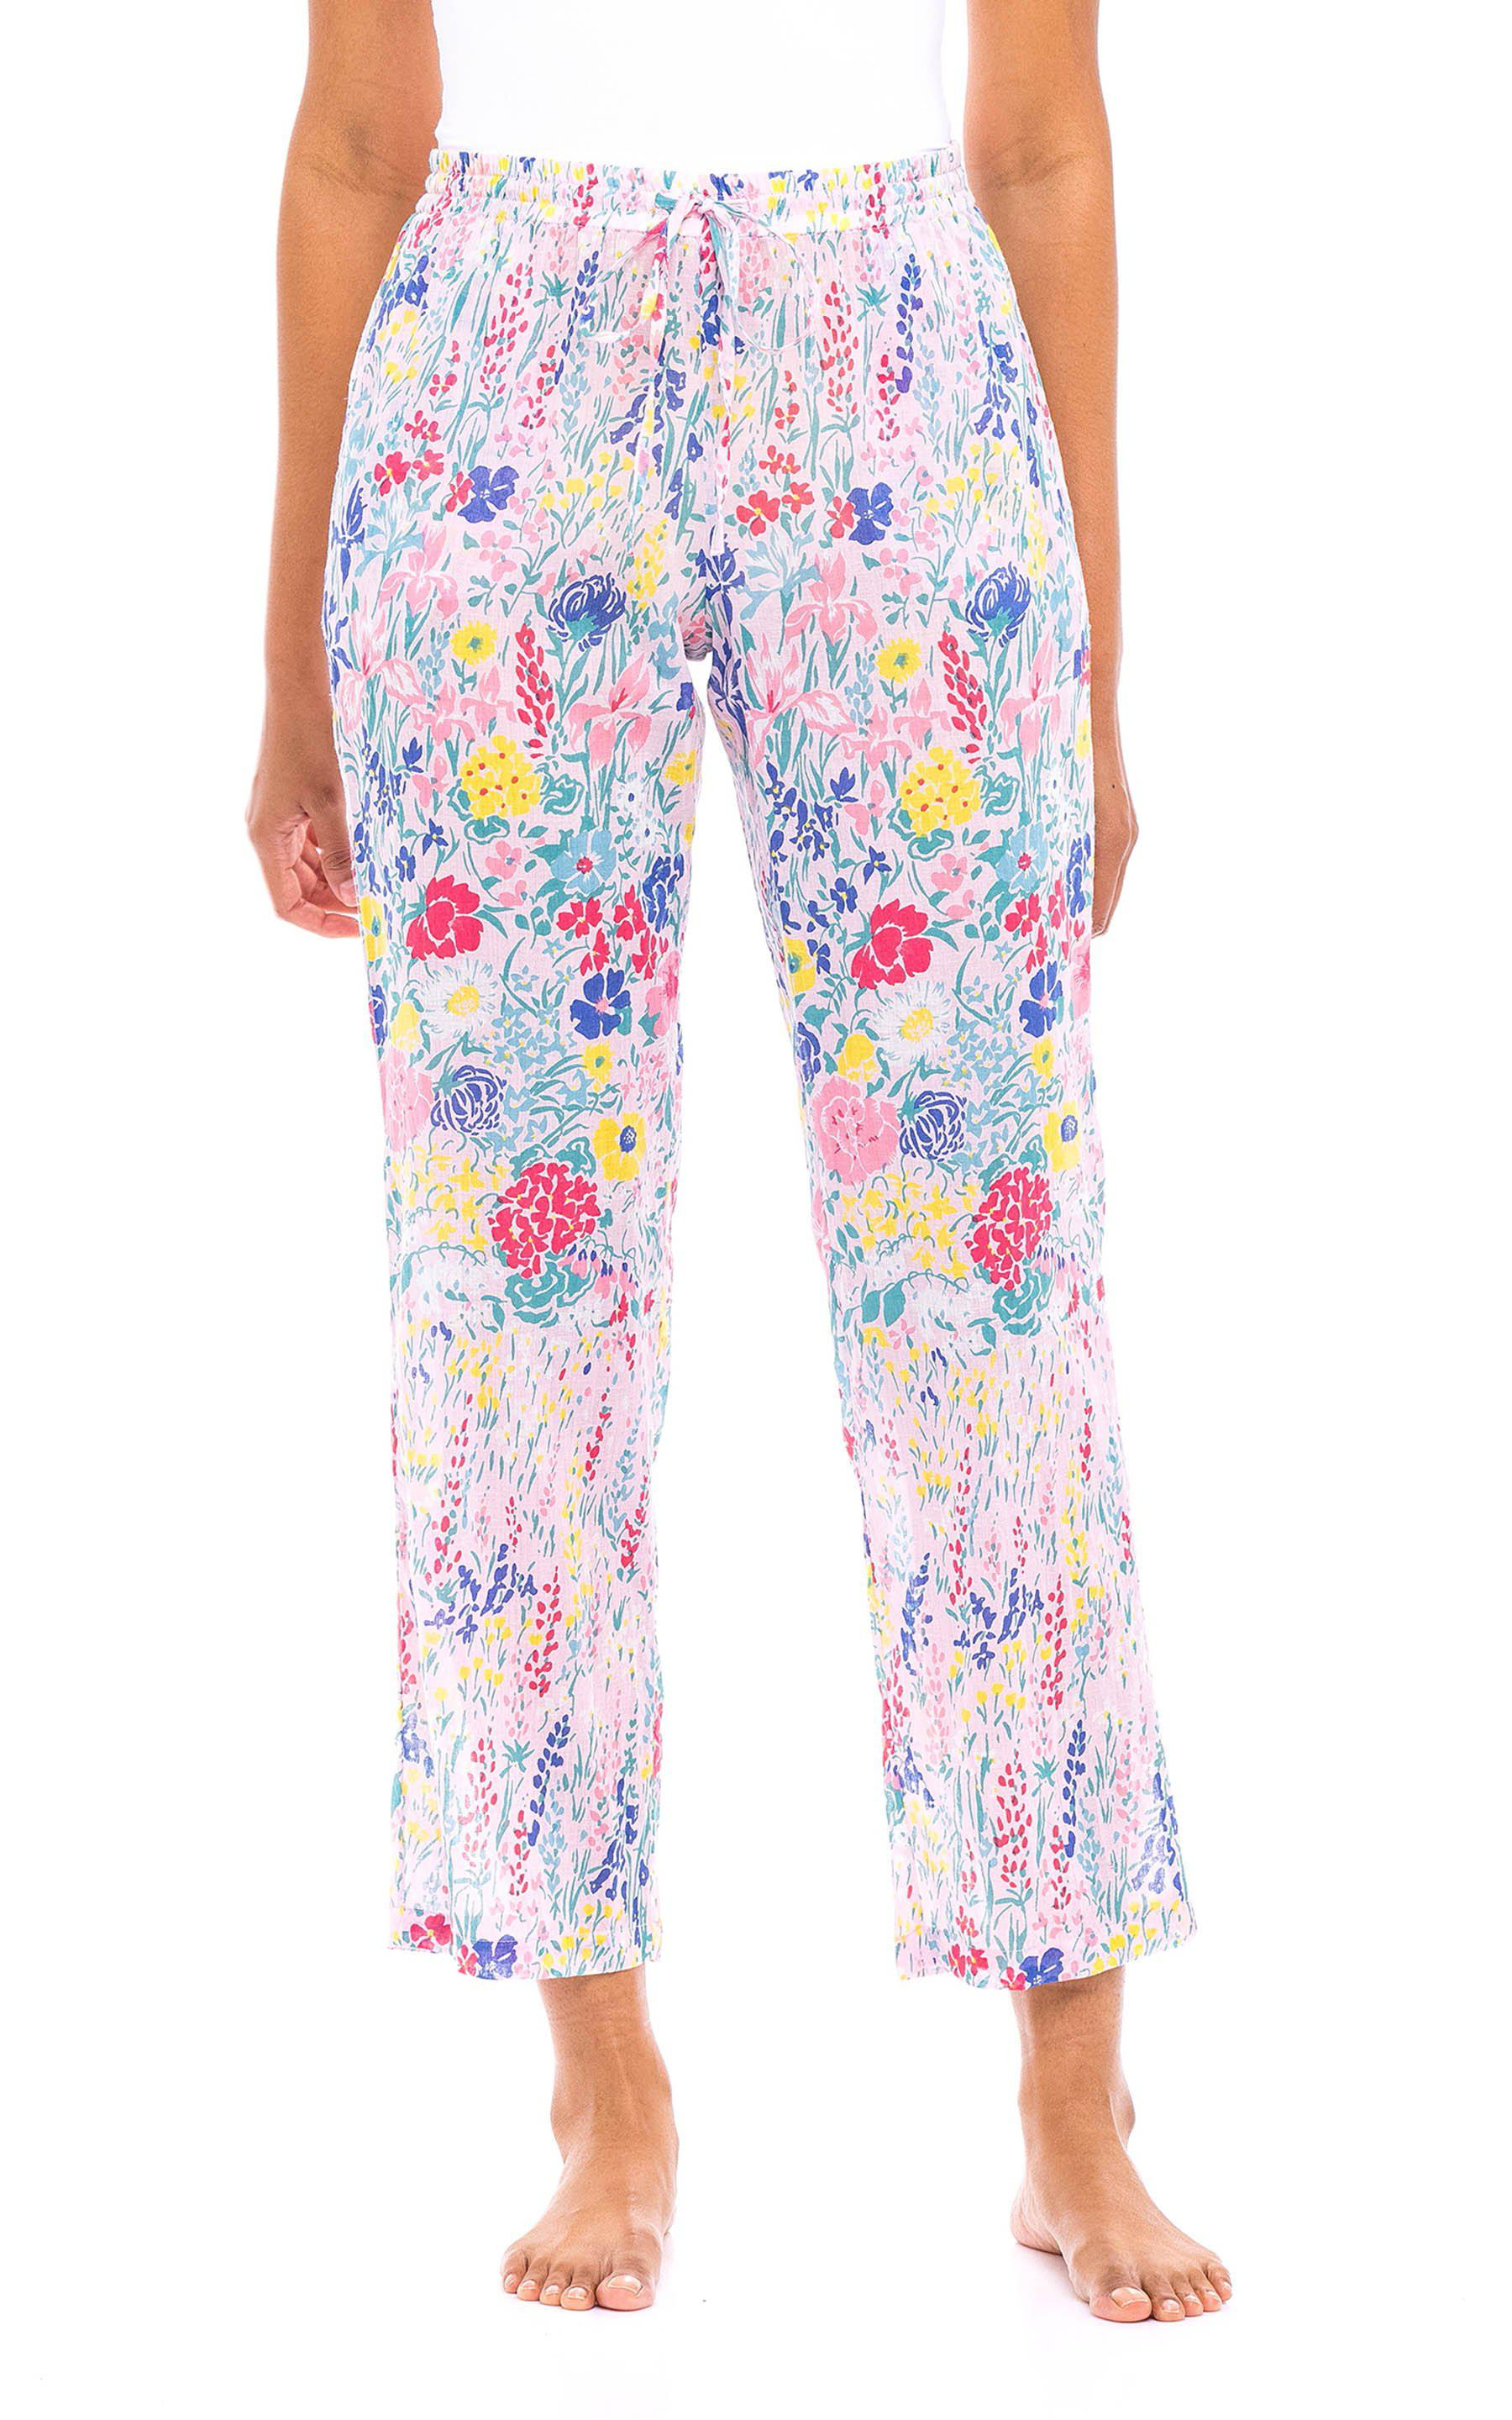 Orion Pull On Pant Dawn Chorus Crystal Rose